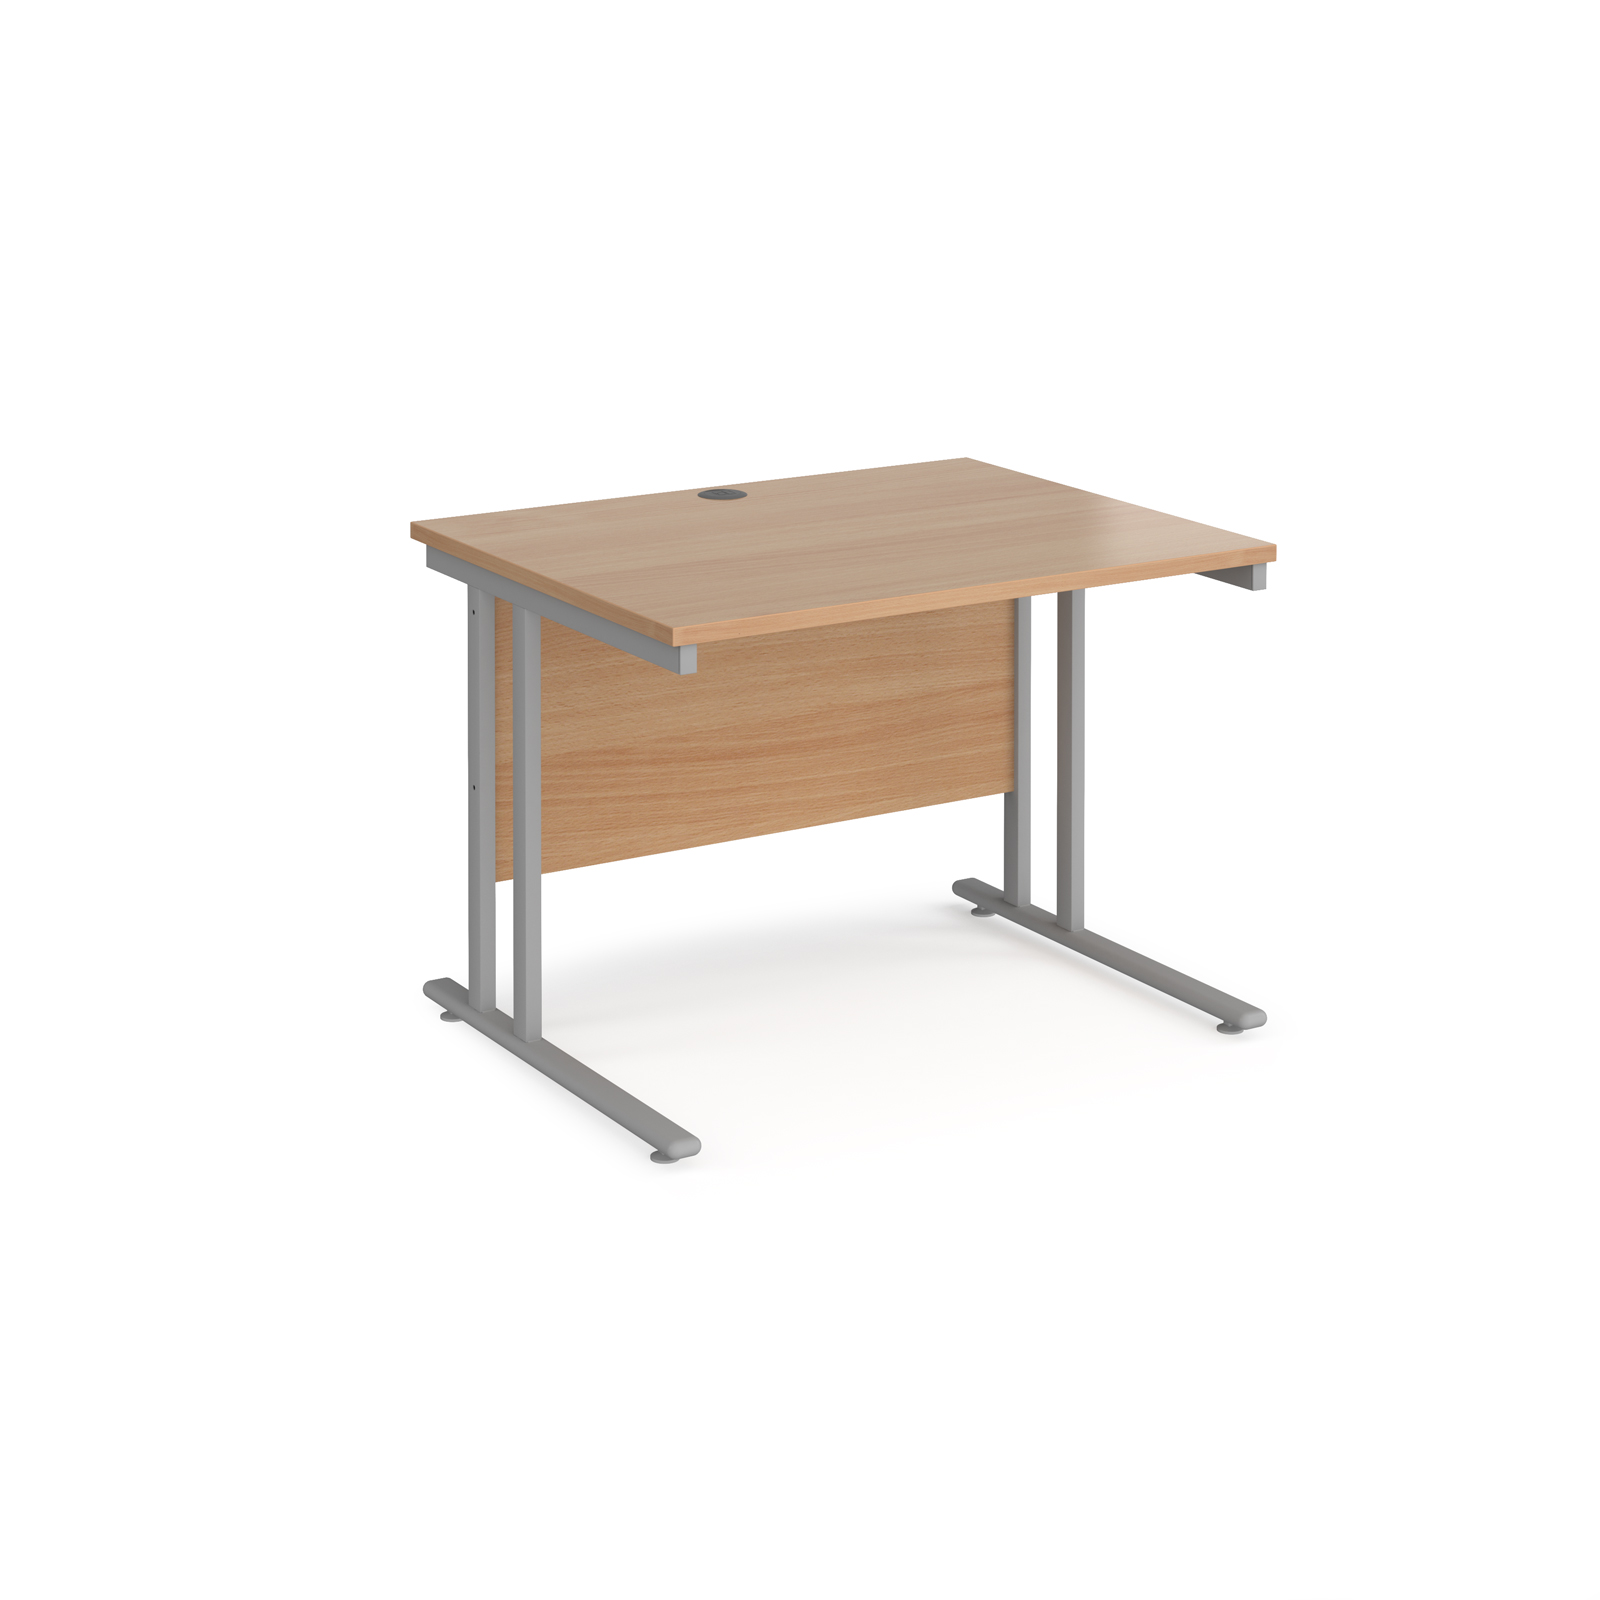 Rectangular Desks Maestro 25 straight desk 1000mm x 800mm - silver cantilever leg frame, beech top